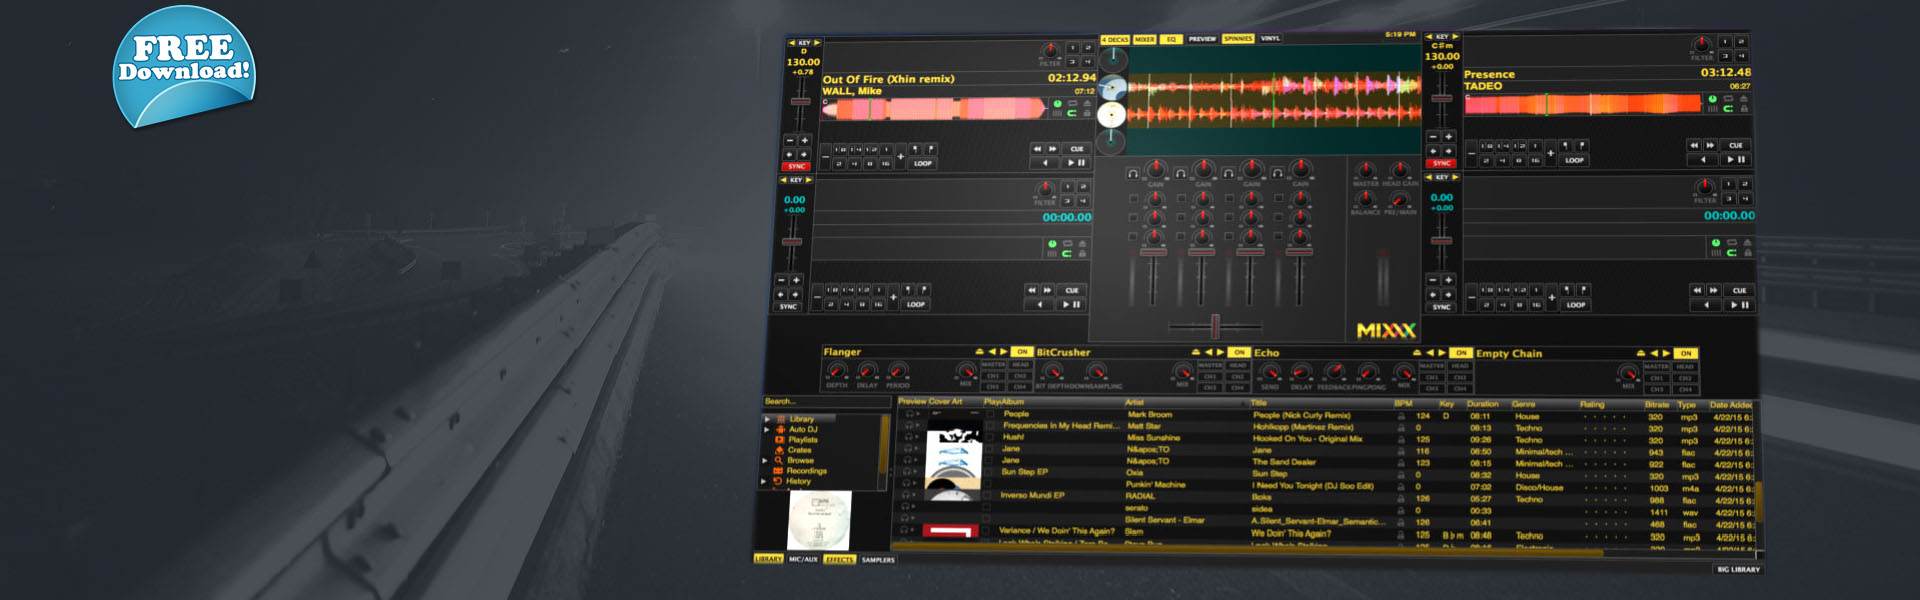 Mixxx 2.0 The most advanced free DJ & Streaming software!!!